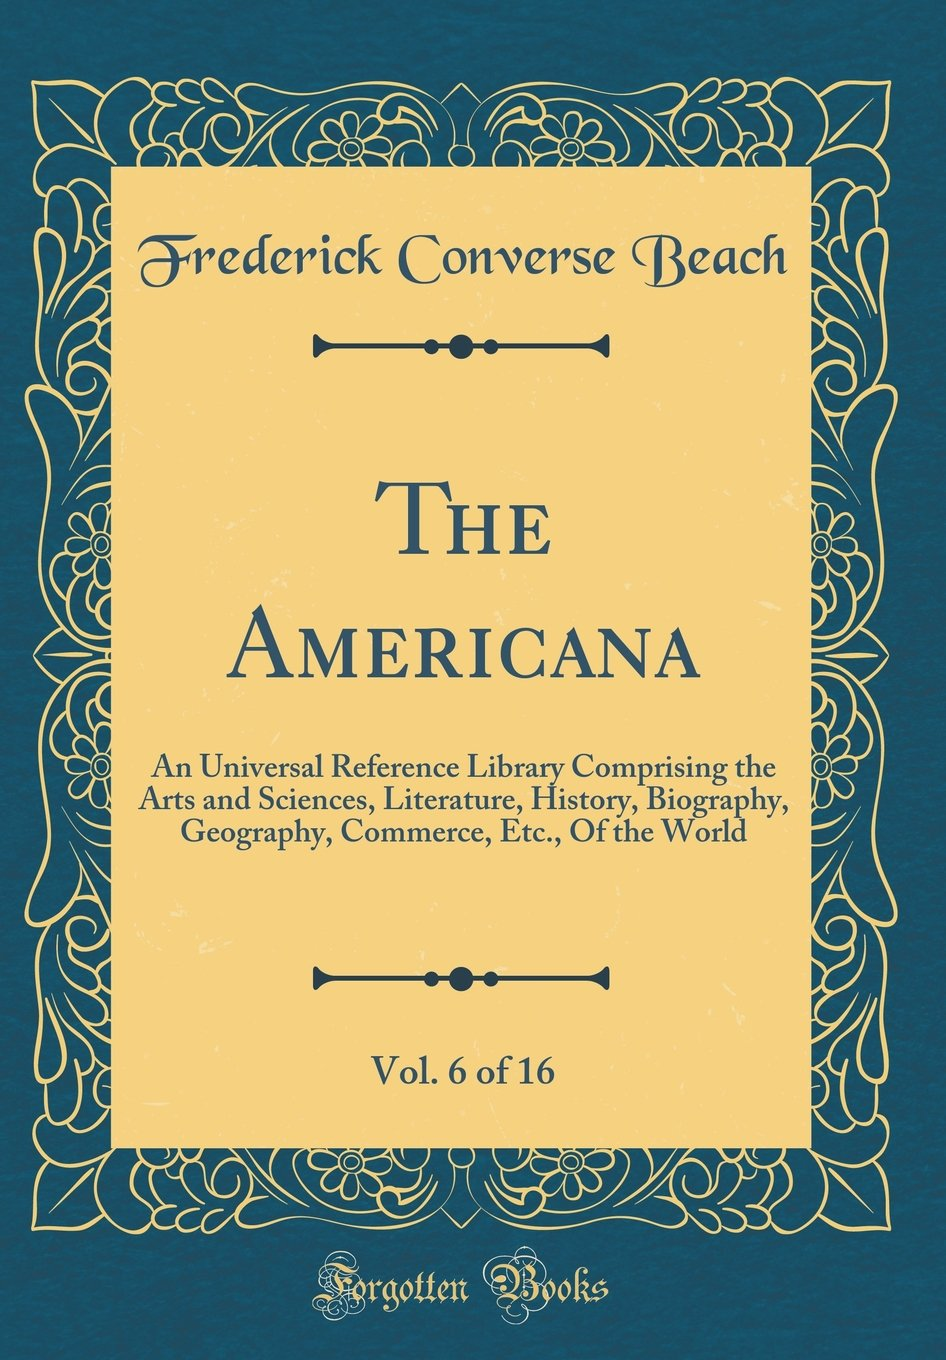 Read Online The Americana, Vol. 6 of 16: An Universal Reference Library Comprising the Arts and Sciences, Literature, History, Biography, Geography, Commerce, Etc., Of the World (Classic Reprint) ebook